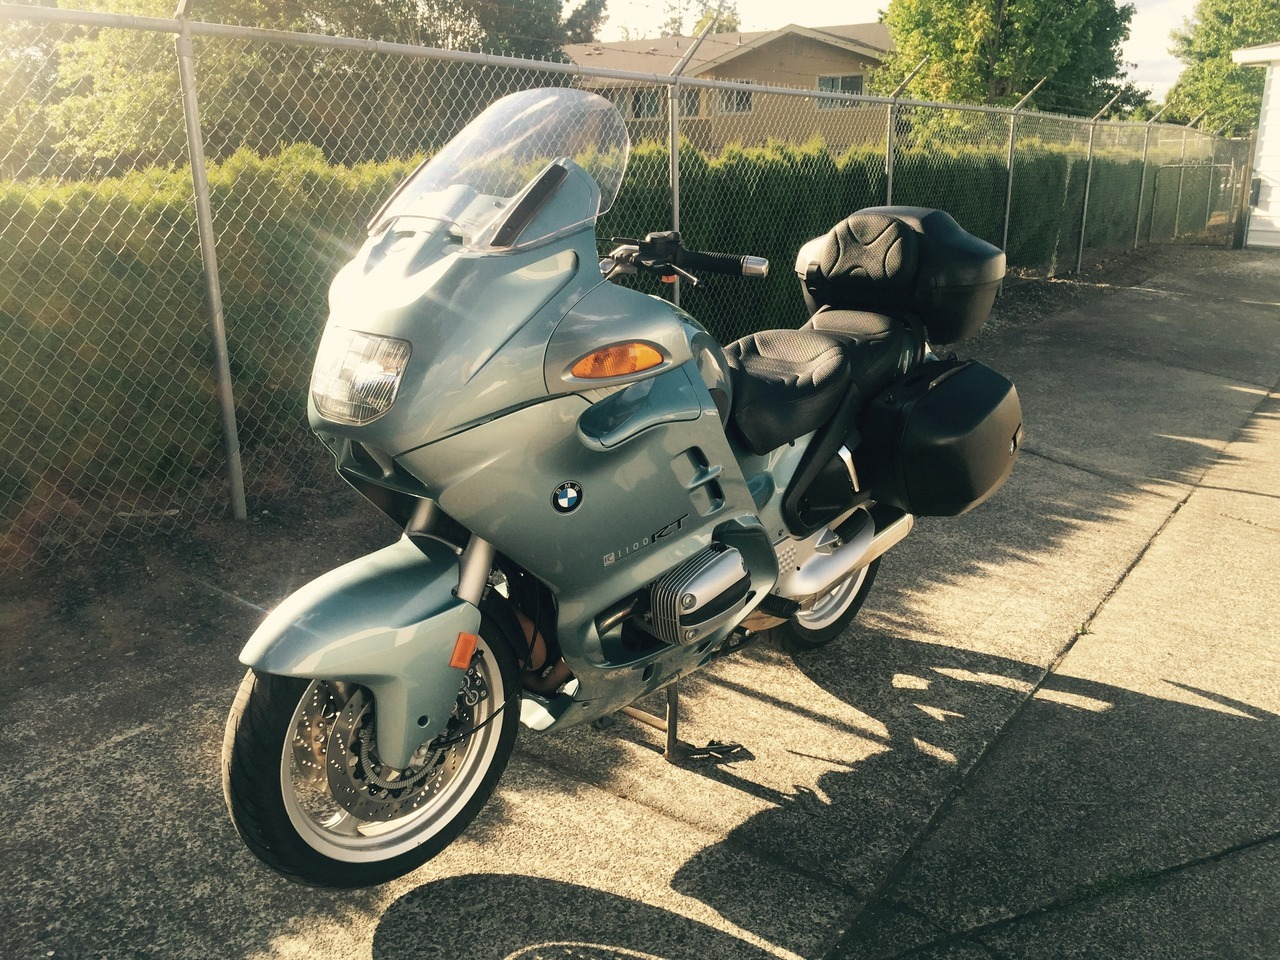 2001 BMW R 1100 RT, motorcycle listing